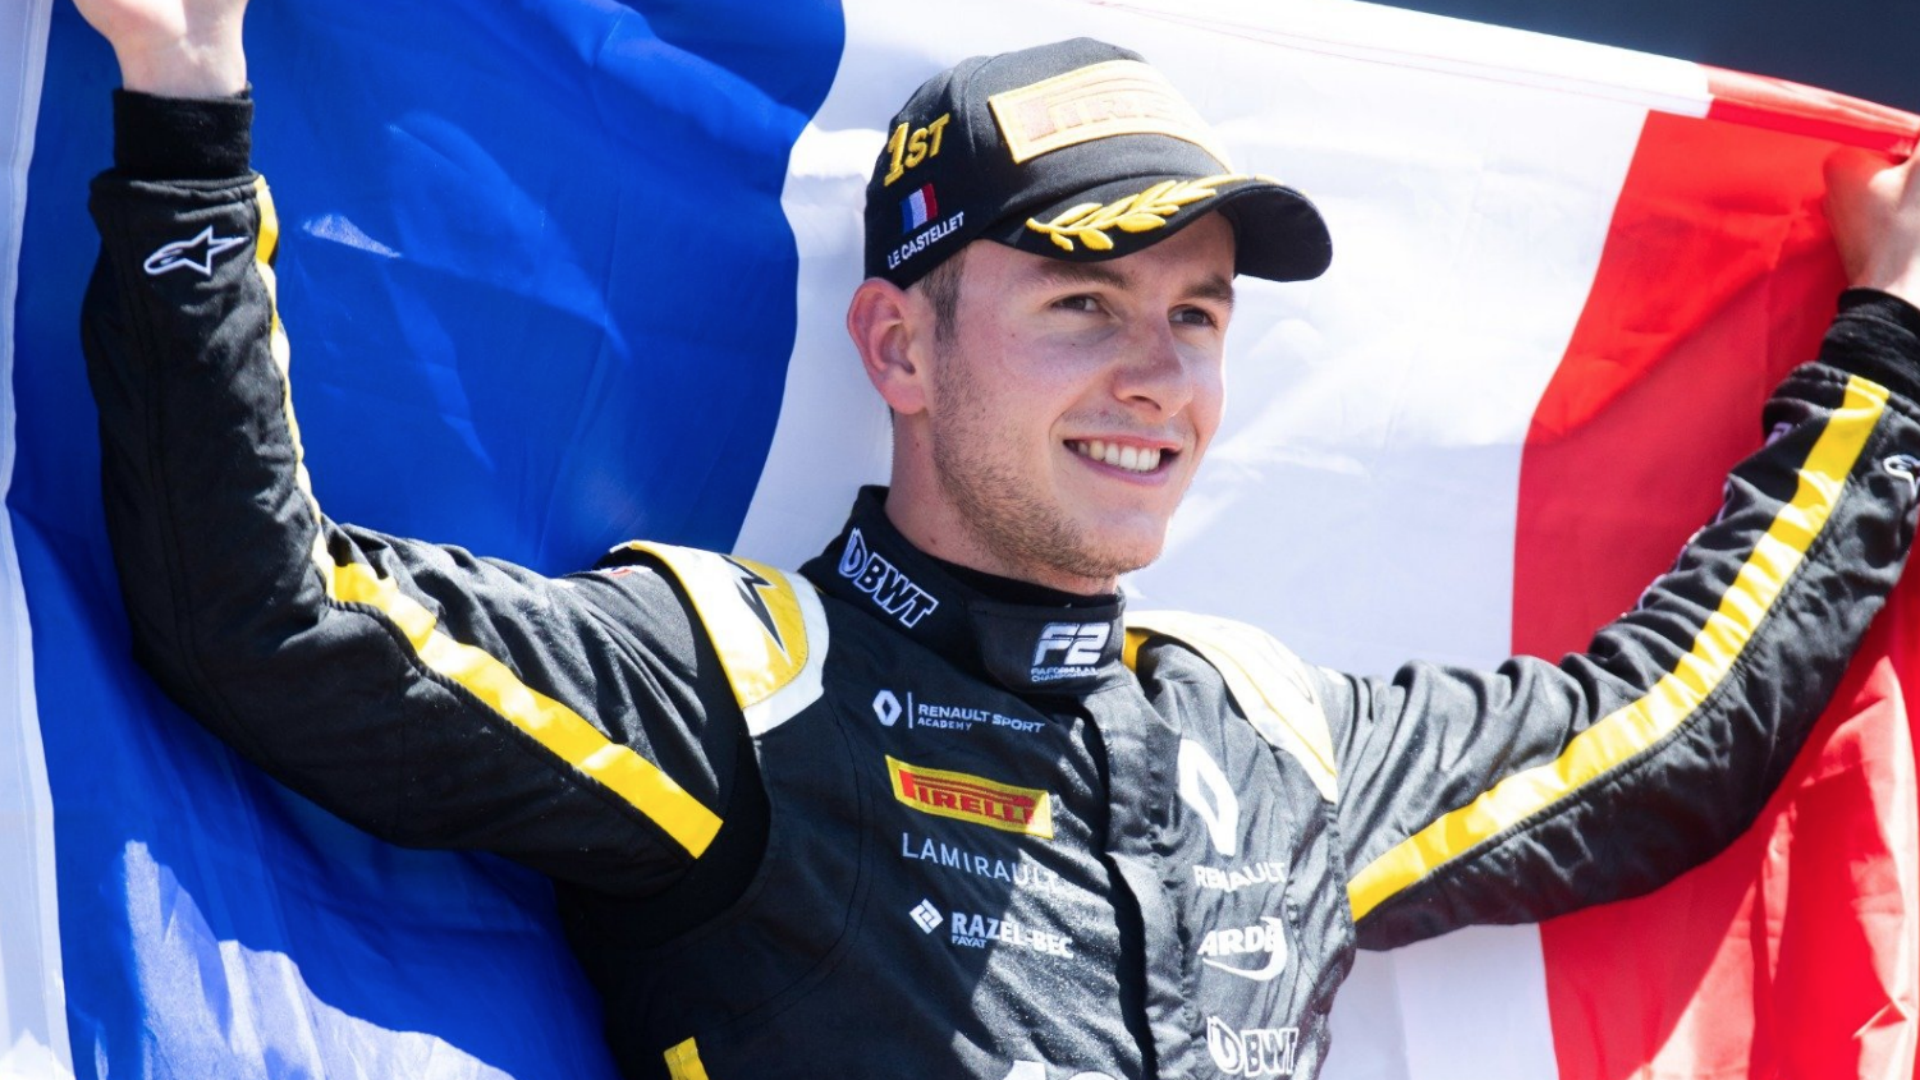 Minute's silence to be held for Hubert before F1's Belgian Grand Prix